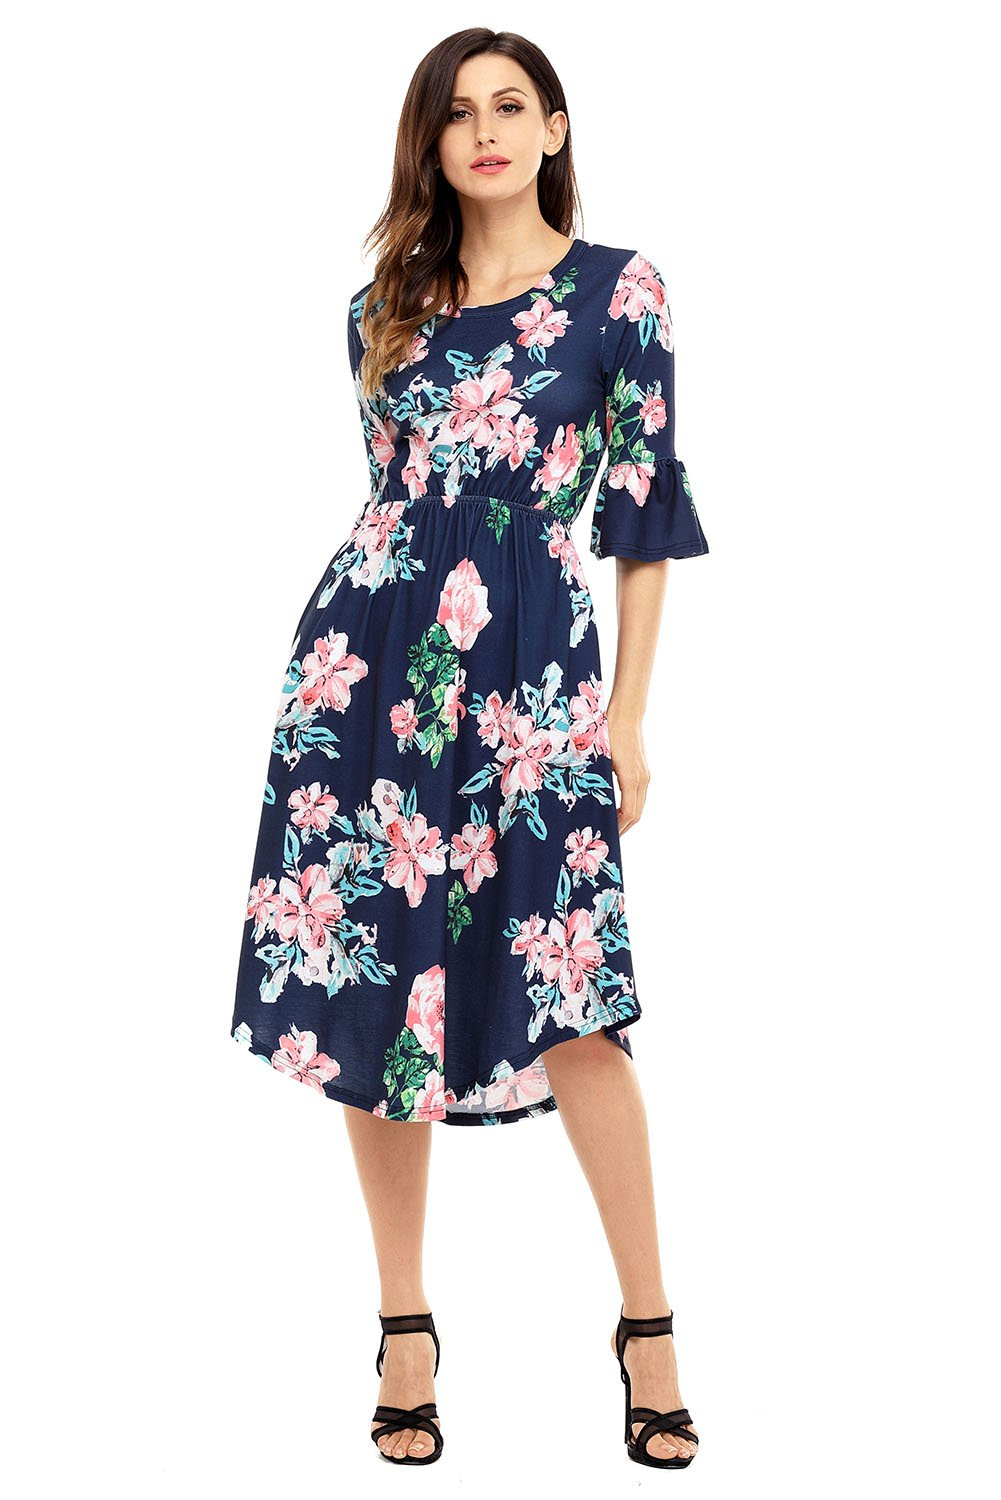 907f7903282 Navy Blue 3 4 Bell Sleeve Floral Midi Dress